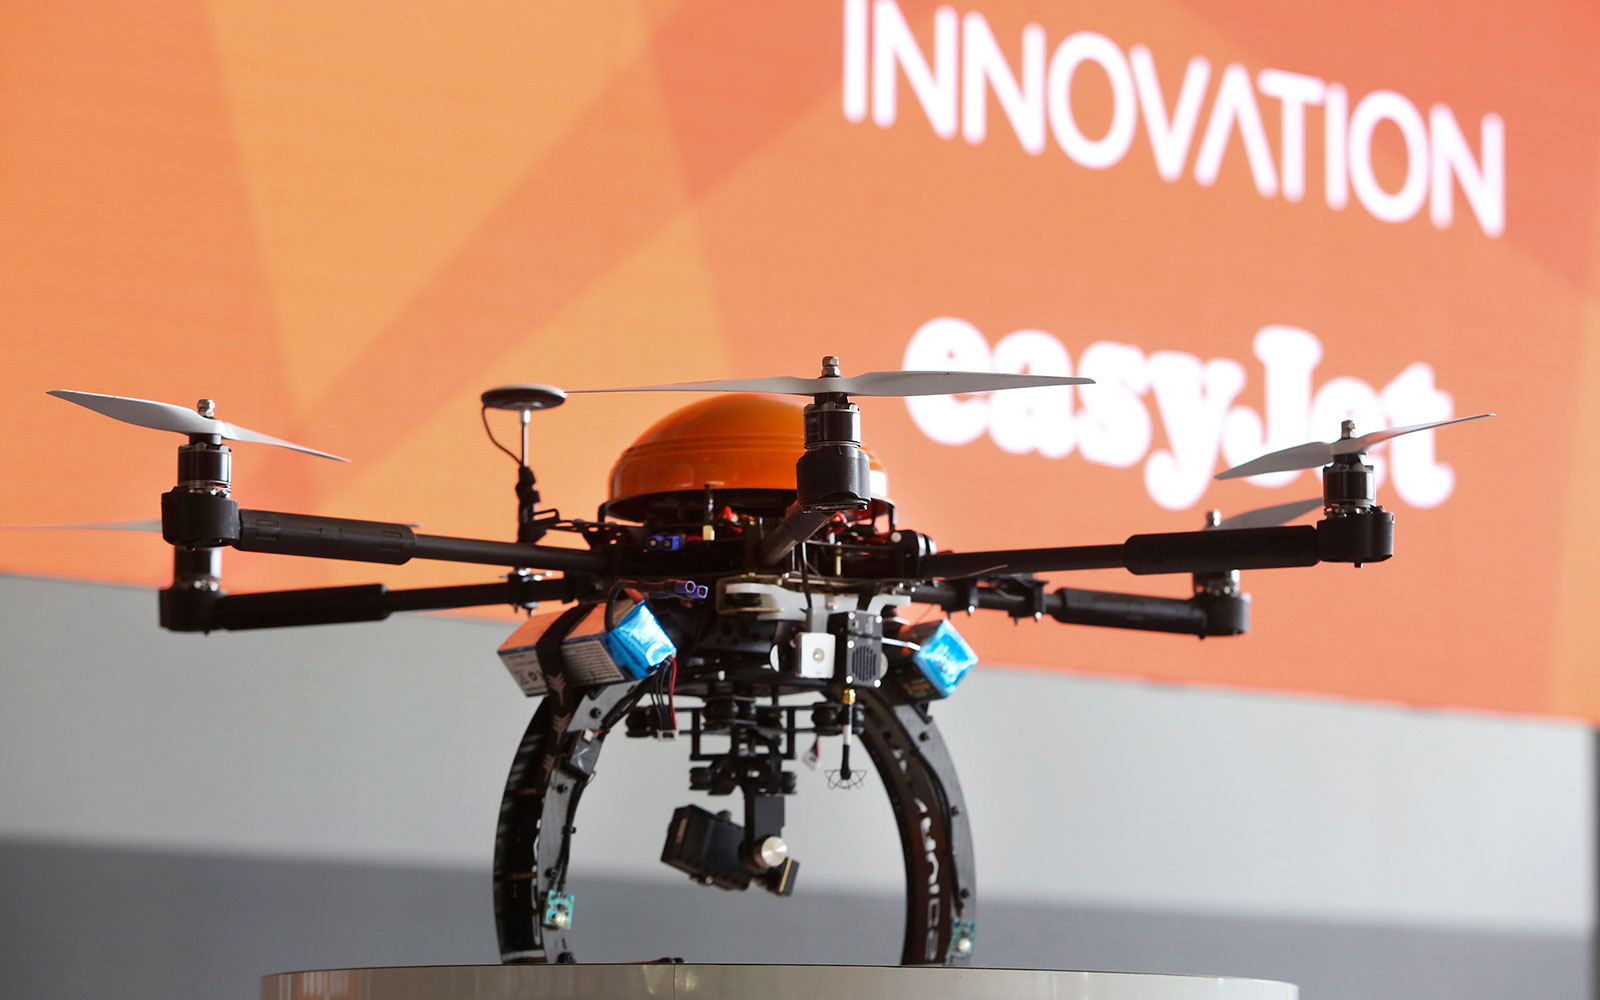 EasyJet to Introduce Drones in Airplane Inspections